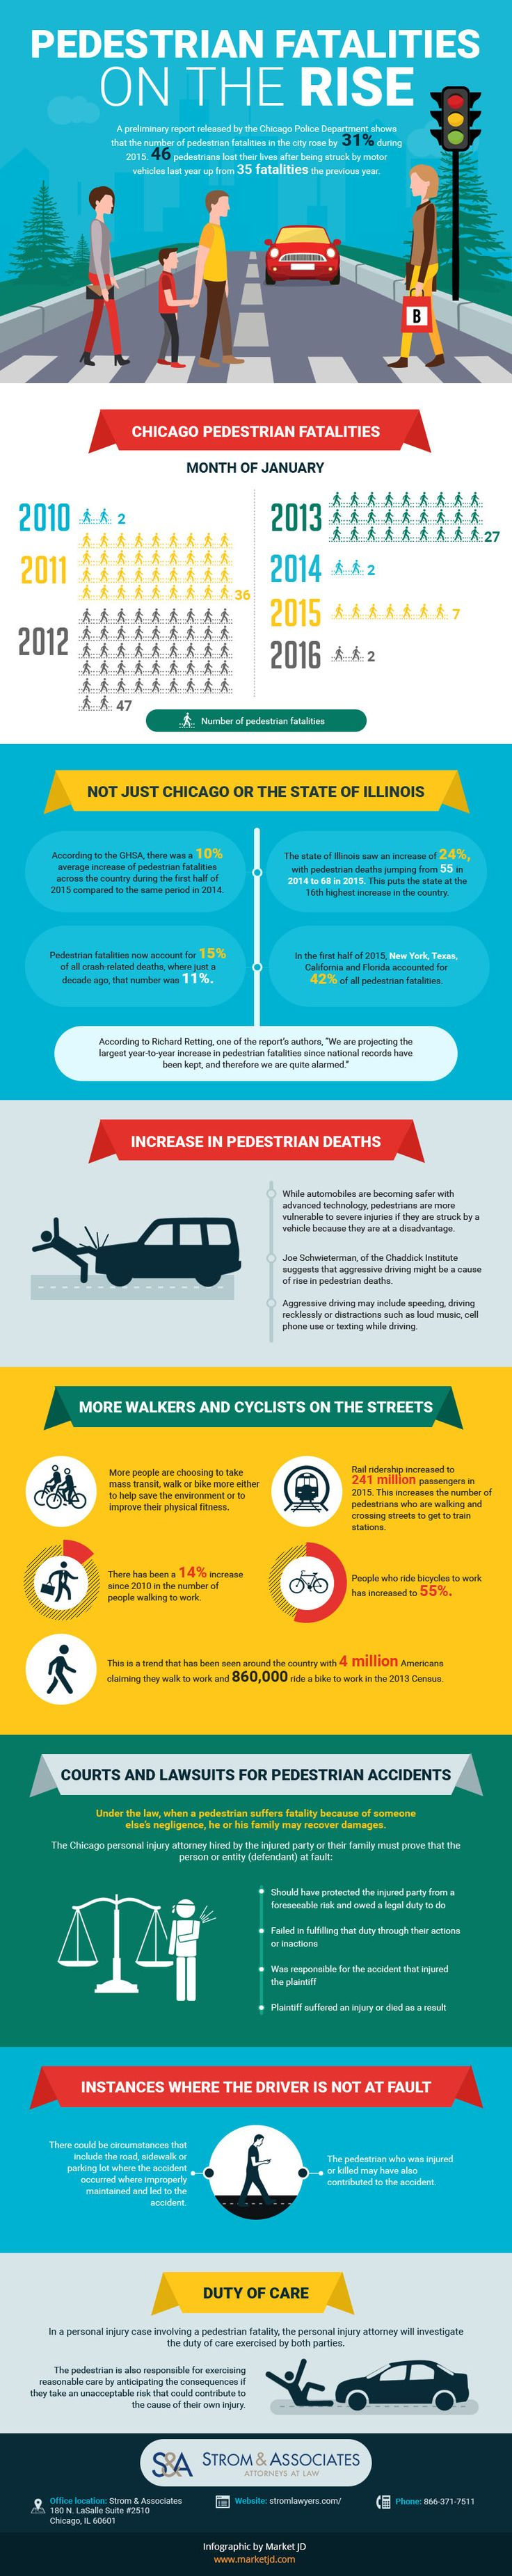 A preliminary report released by the Chicago Police Department shows that the number of pedestrian fatalities in the city rose by 31 percent during 2015. Forty-six pedestrians lost their lives after being struck by motor vehicles last year. This is up from 35 fatalities the previous year. The Illinois Department of Transportation will be releasing their official count later this year, but it is expected their report will be the same. For more detail Visit: http://stromlawyers.com